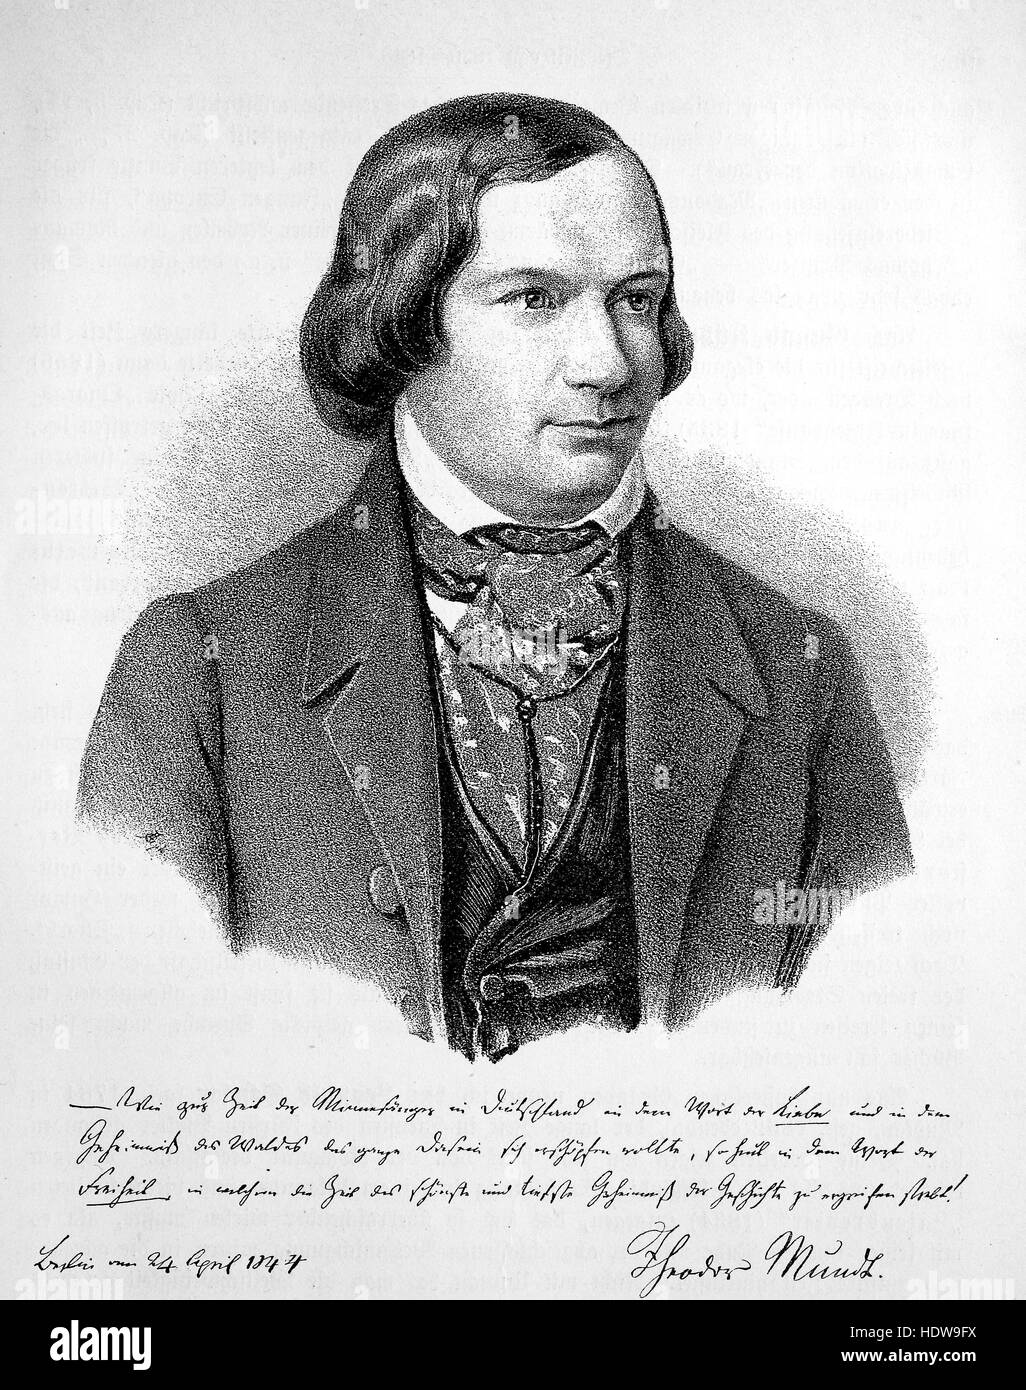 Theodor Mundt, 1808-1861, a German critic and novelist, woodcut from the year 1880 - Stock Image